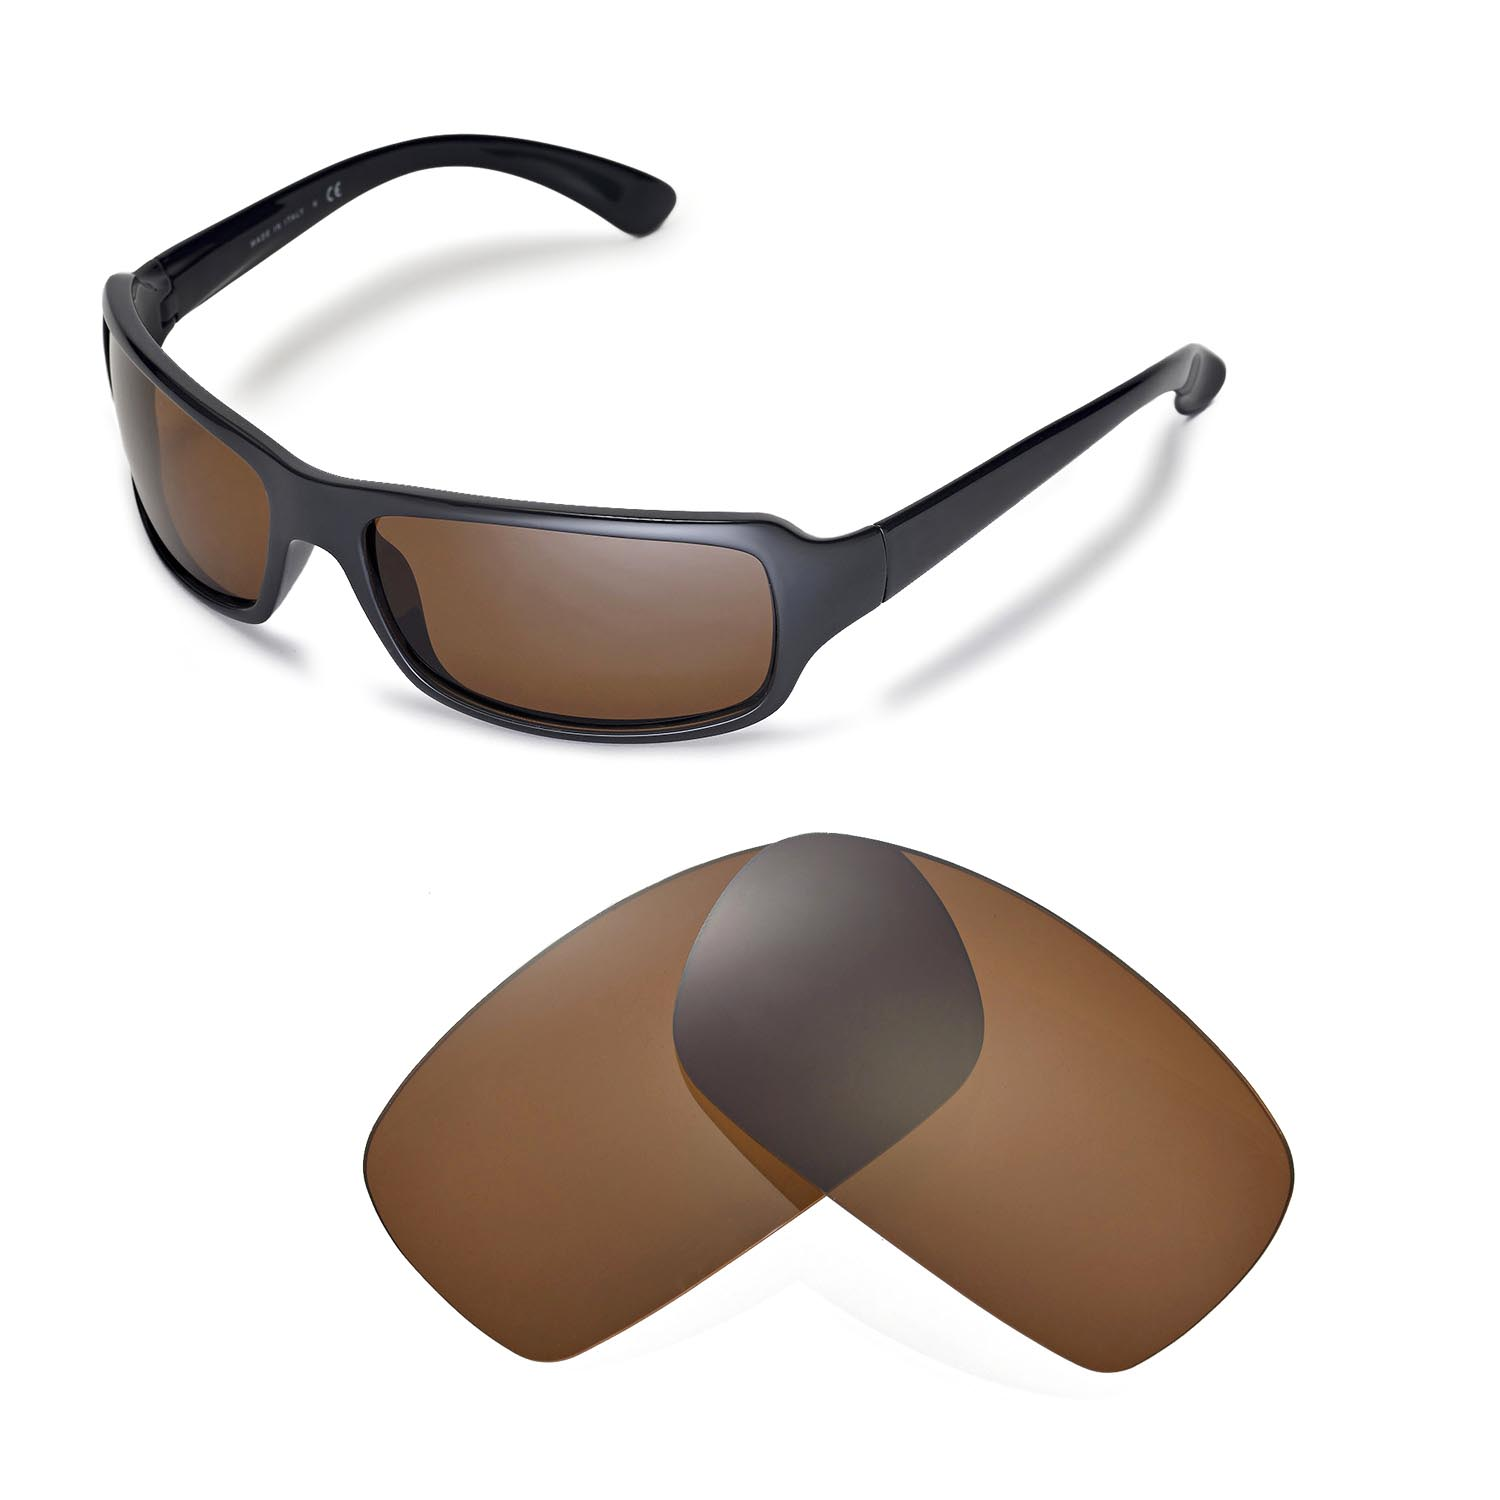 c506f65c66 Details about New Walleva Polarized Brown Lenses For Ray-Ban RB4075 61mm